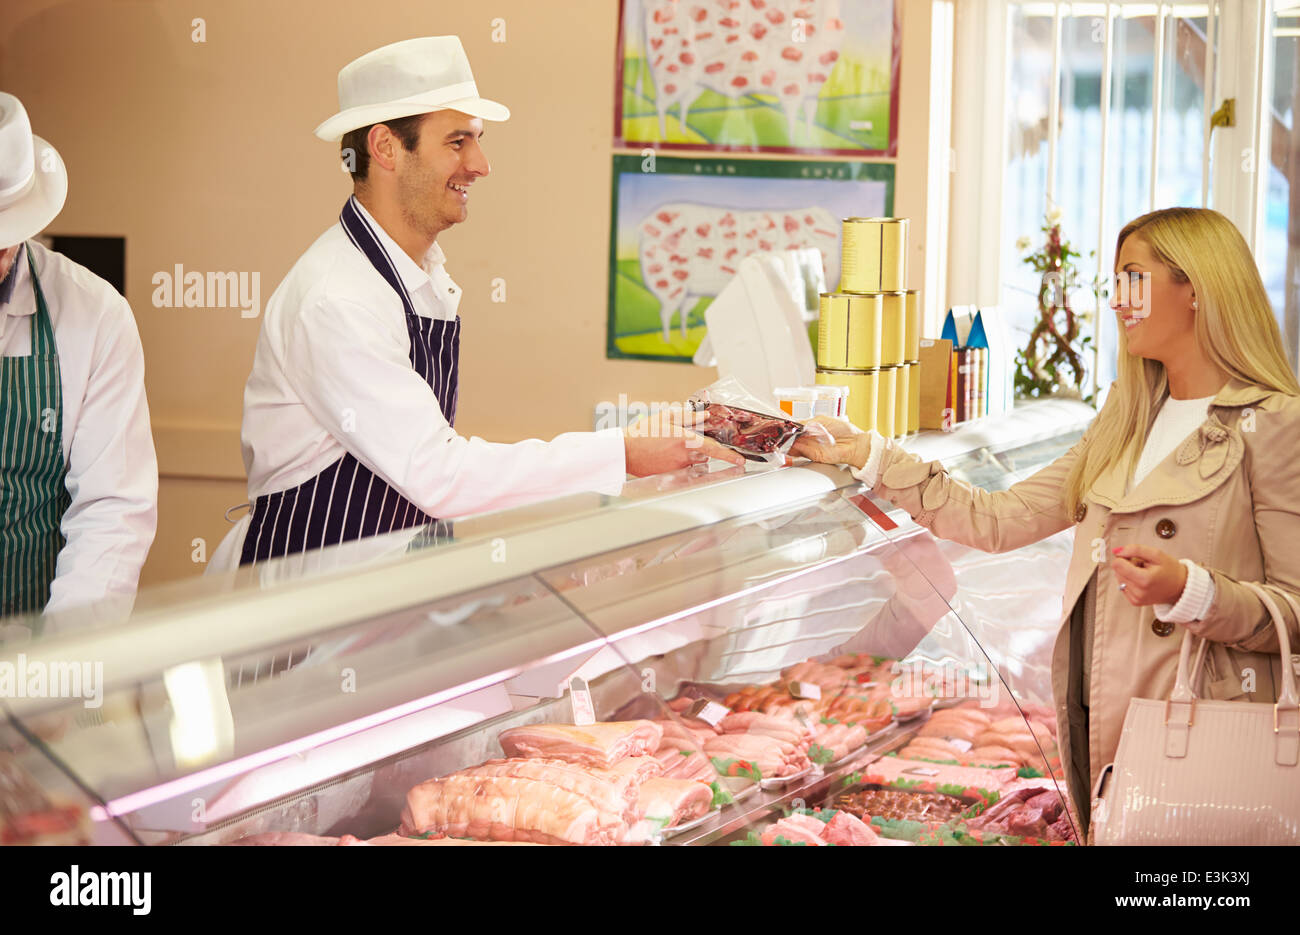 Butcher Serving Customer In Shop - Stock Image